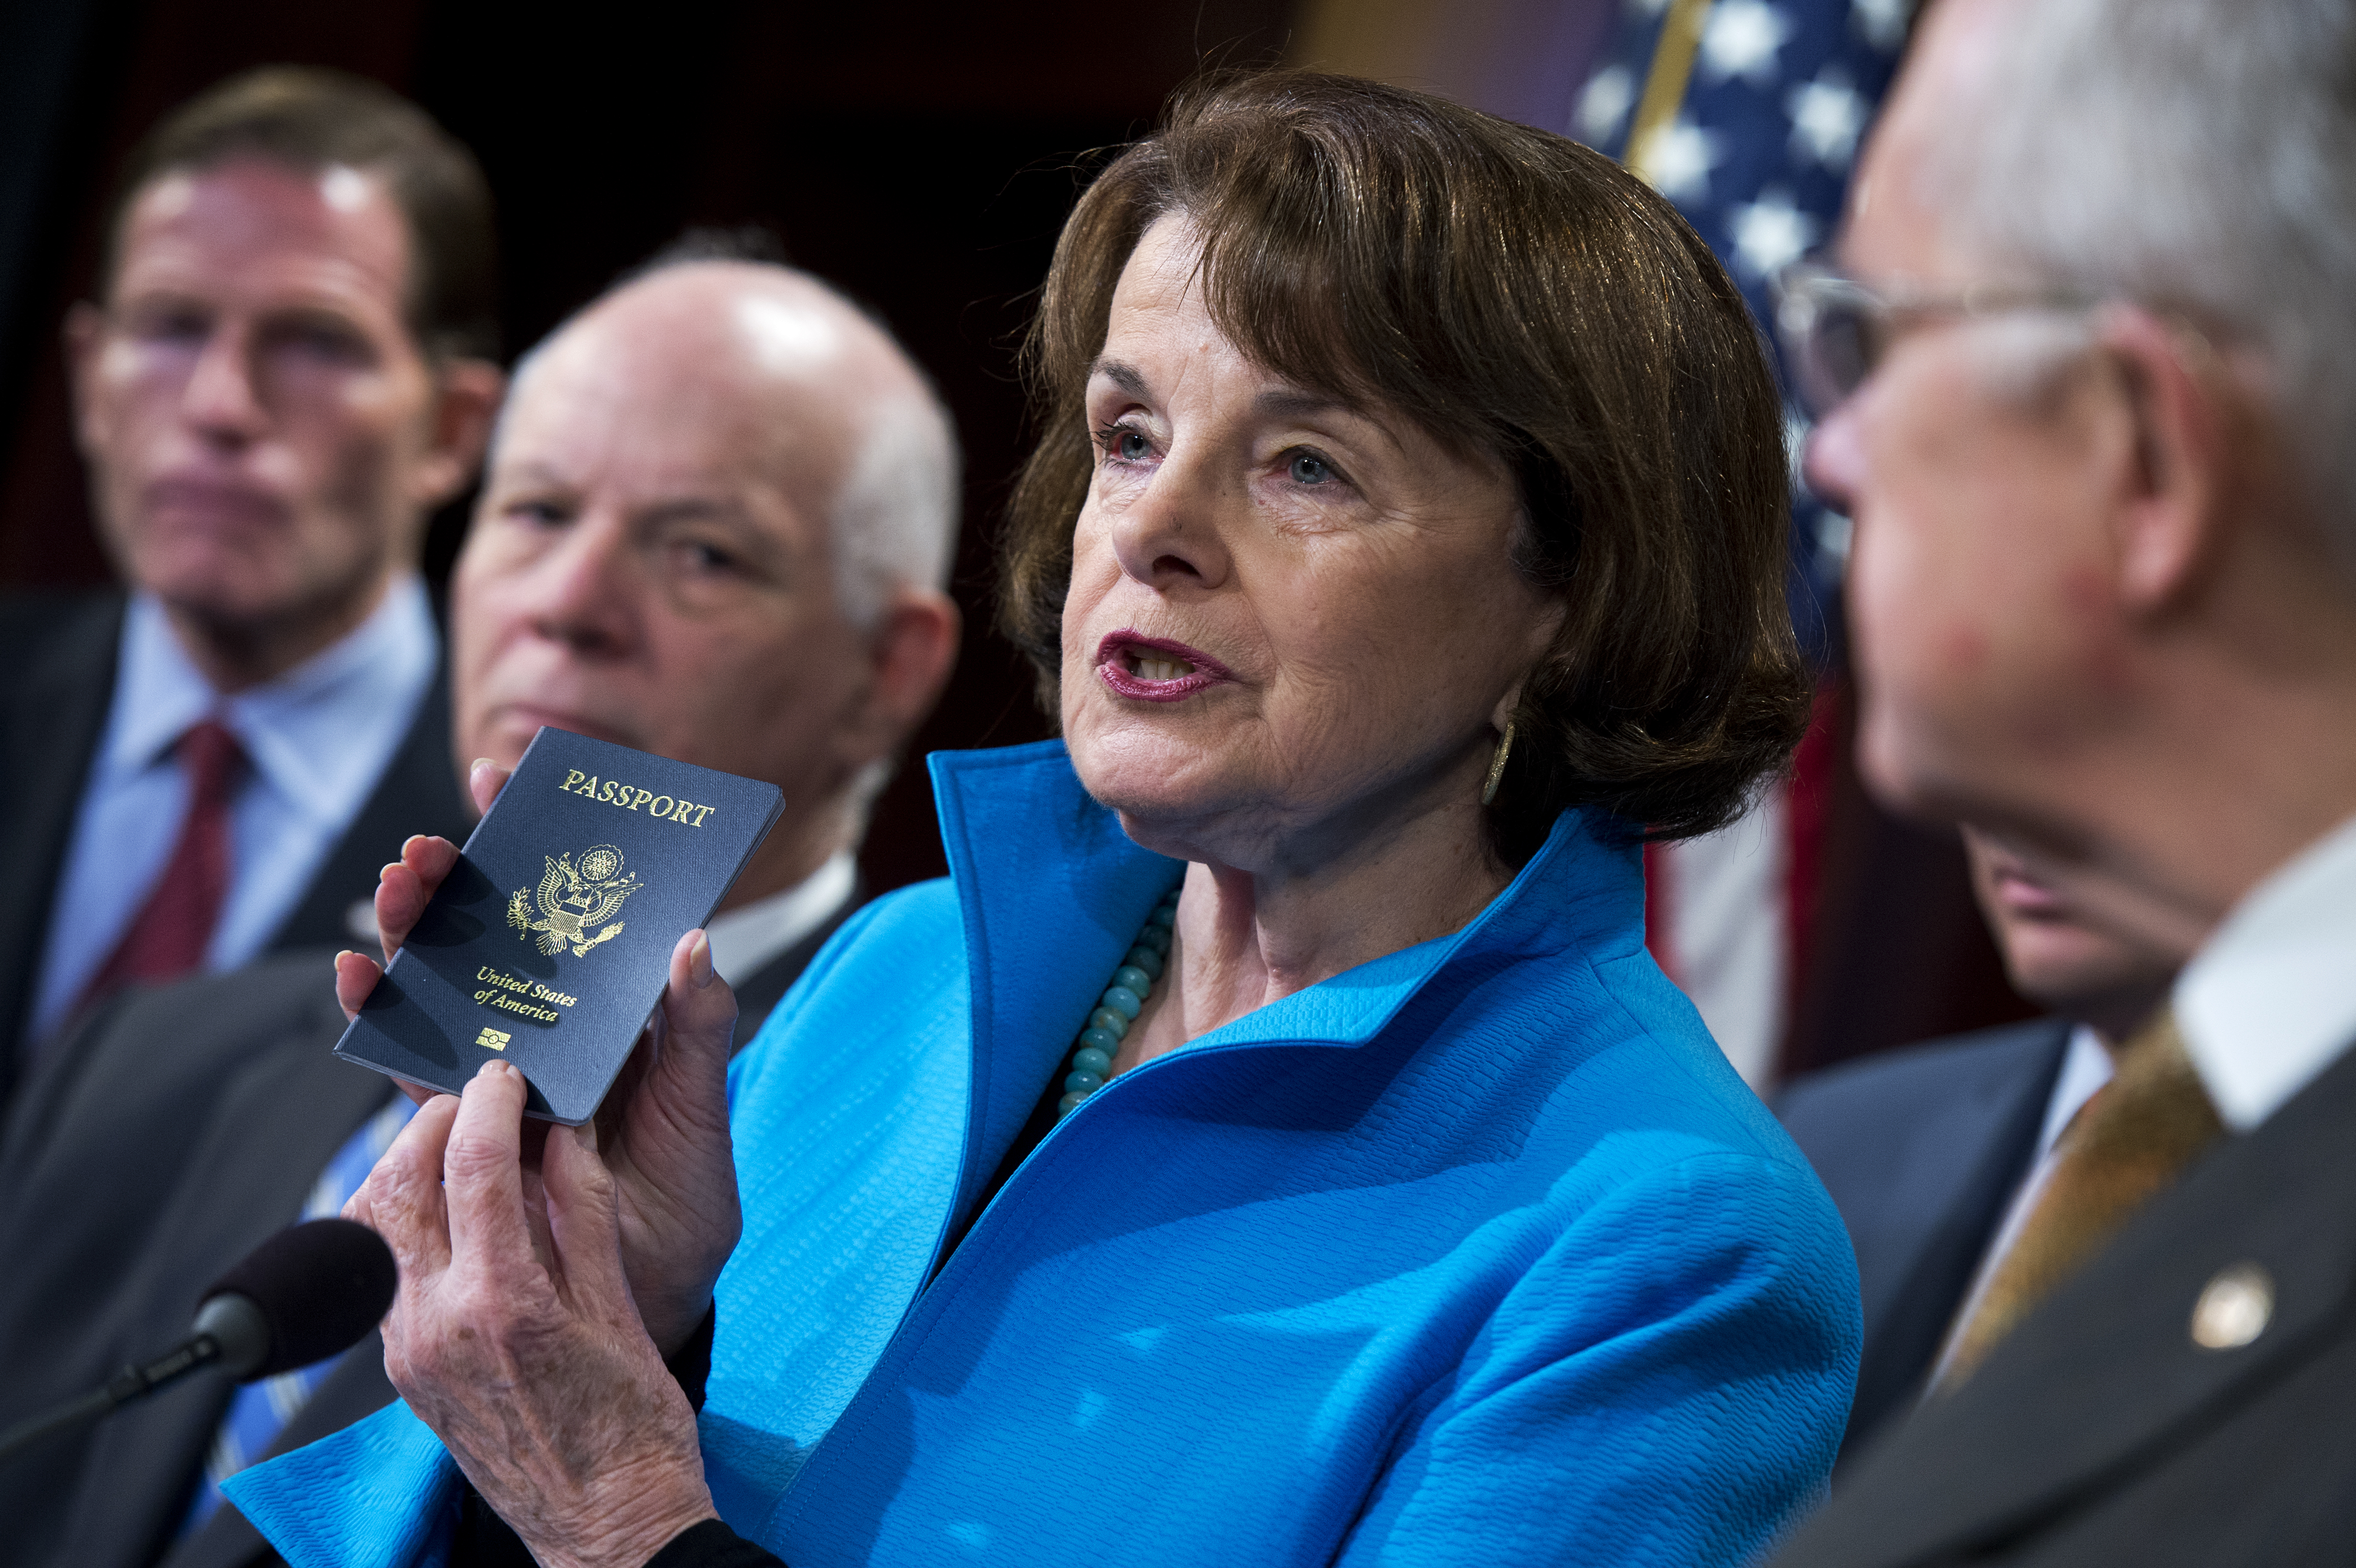 Dianne Feinstein, D-Calif., shows her passport during a news conference on closing loopholes in the Visa Waiver Program, Nov. 19, 2015.